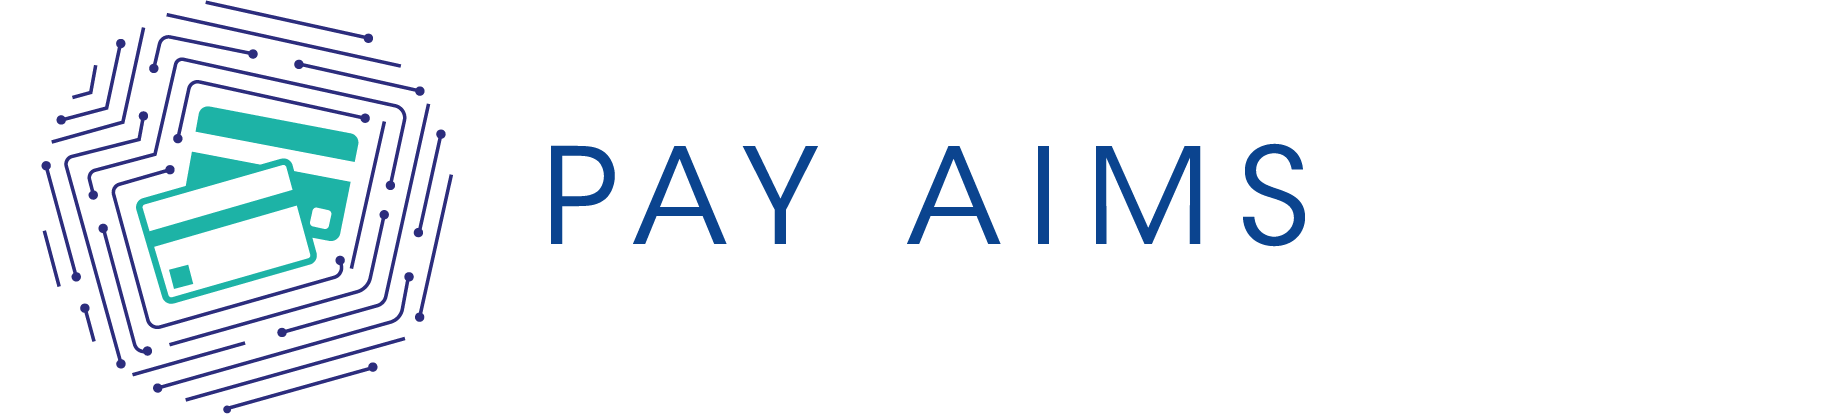 PAY AIMS